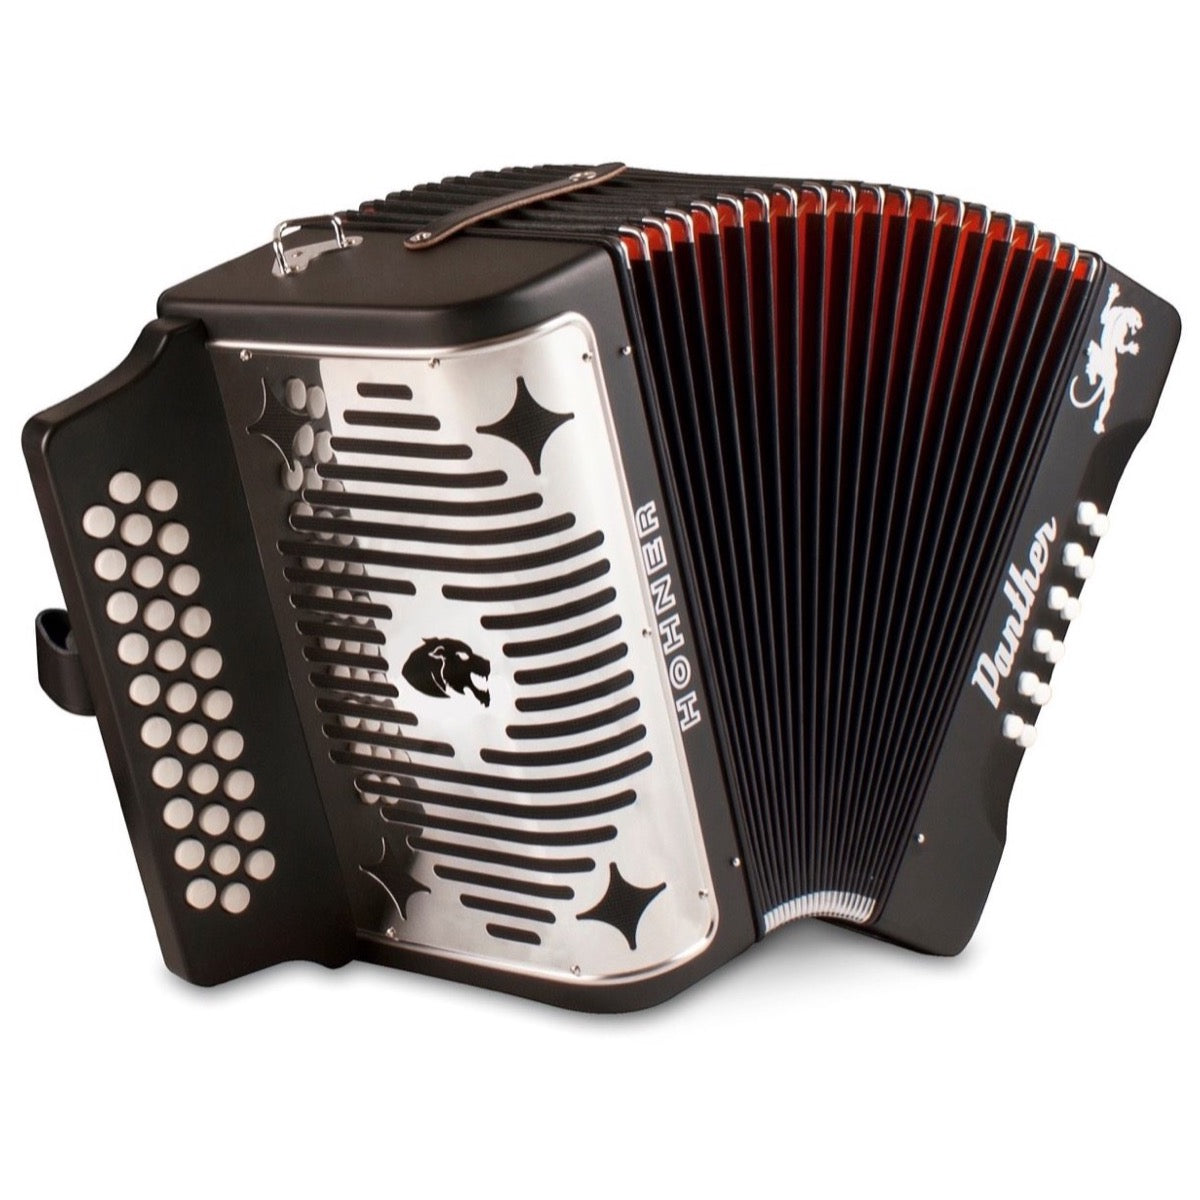 Hohner Panther Diatonic Accordion, Black, 3100GB, Key Combination G/C/F